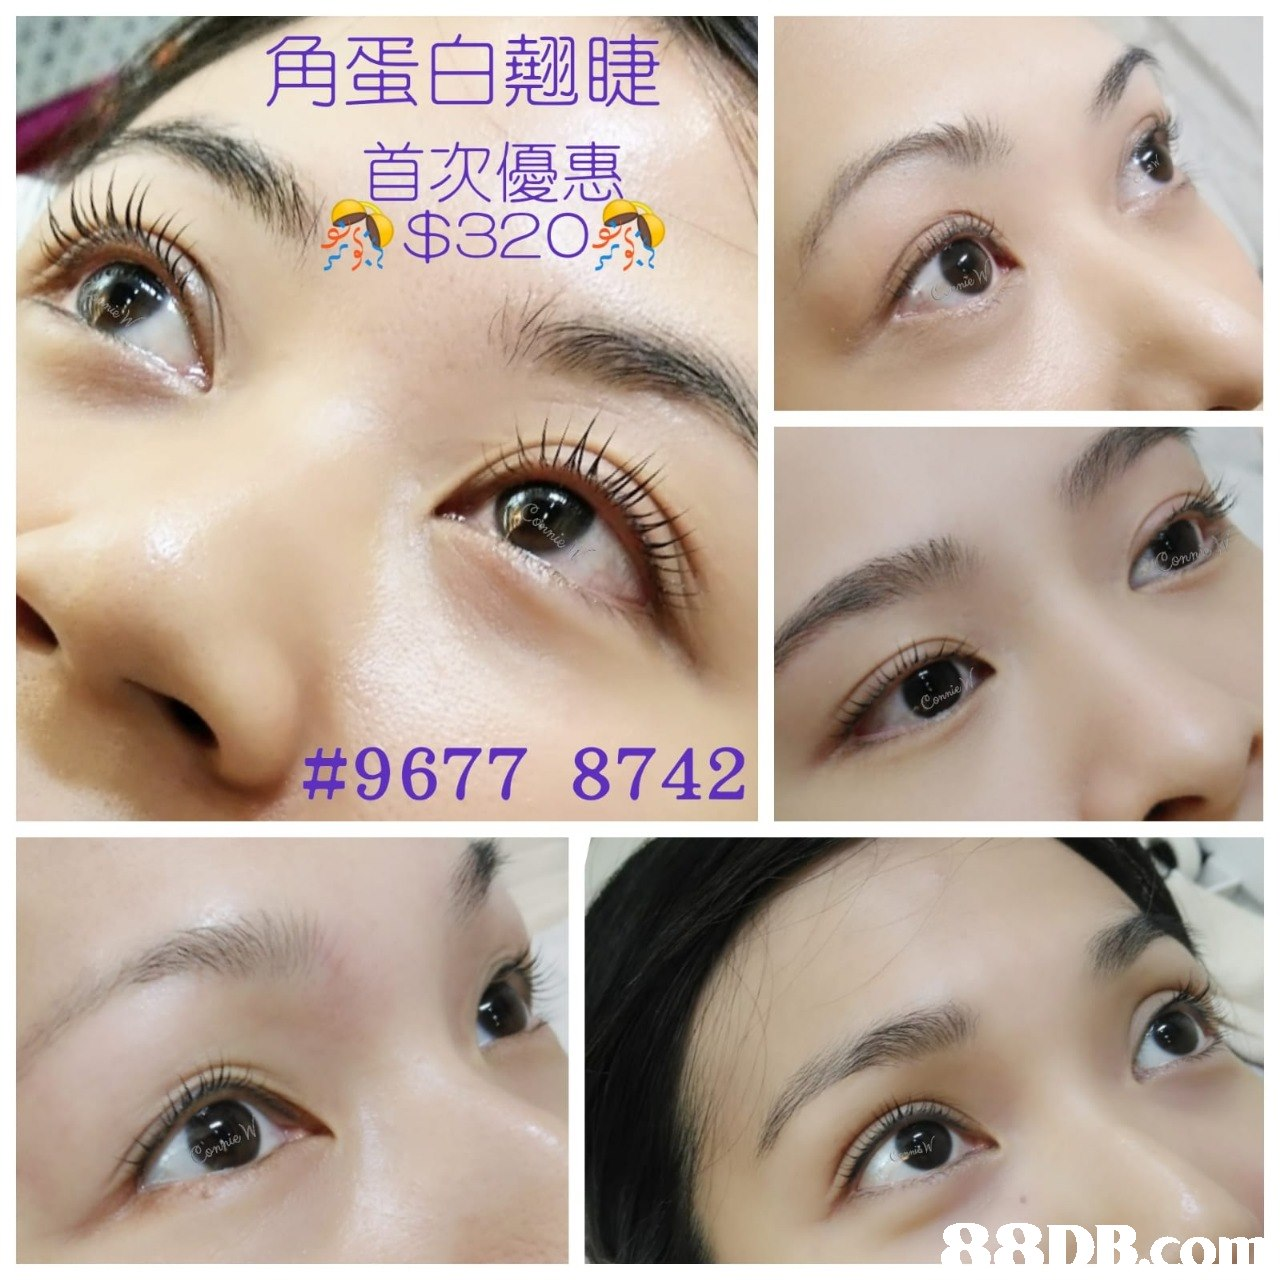 角蛋白翹睫 首双優惠 #9677 8742  eyebrow,eyelash,nose,eye,forehead